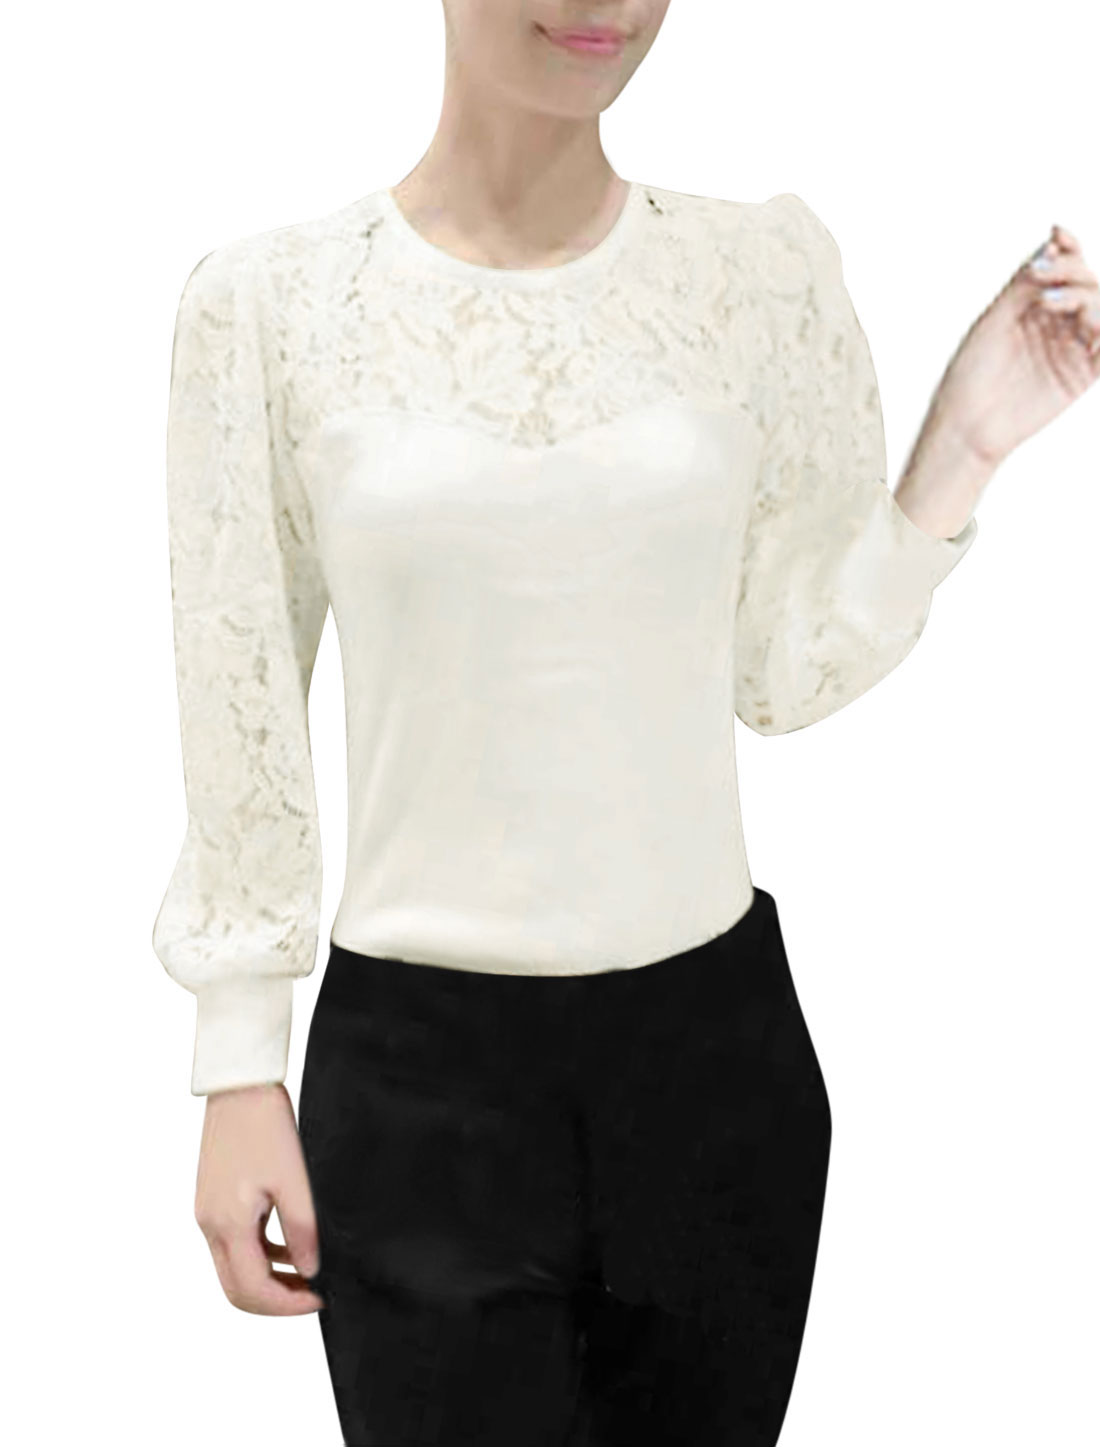 Ladies Semi-Sheer Lace Panel Slim Fit White Shirt XS